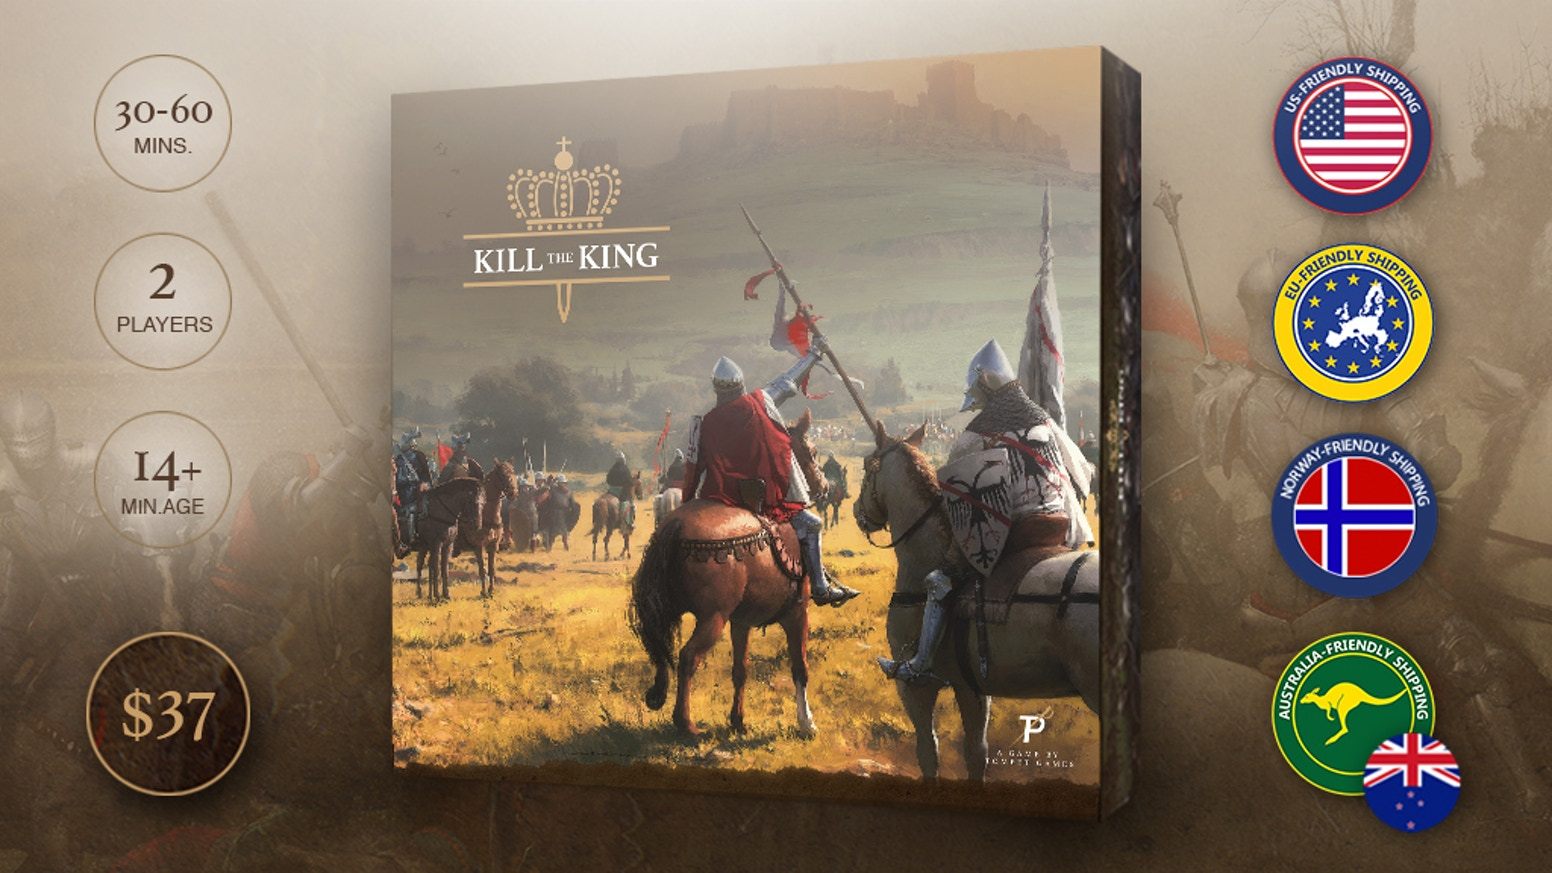 Kill the king is a strategic board game where two armies fight each other on the battlefield and on the castle walls.